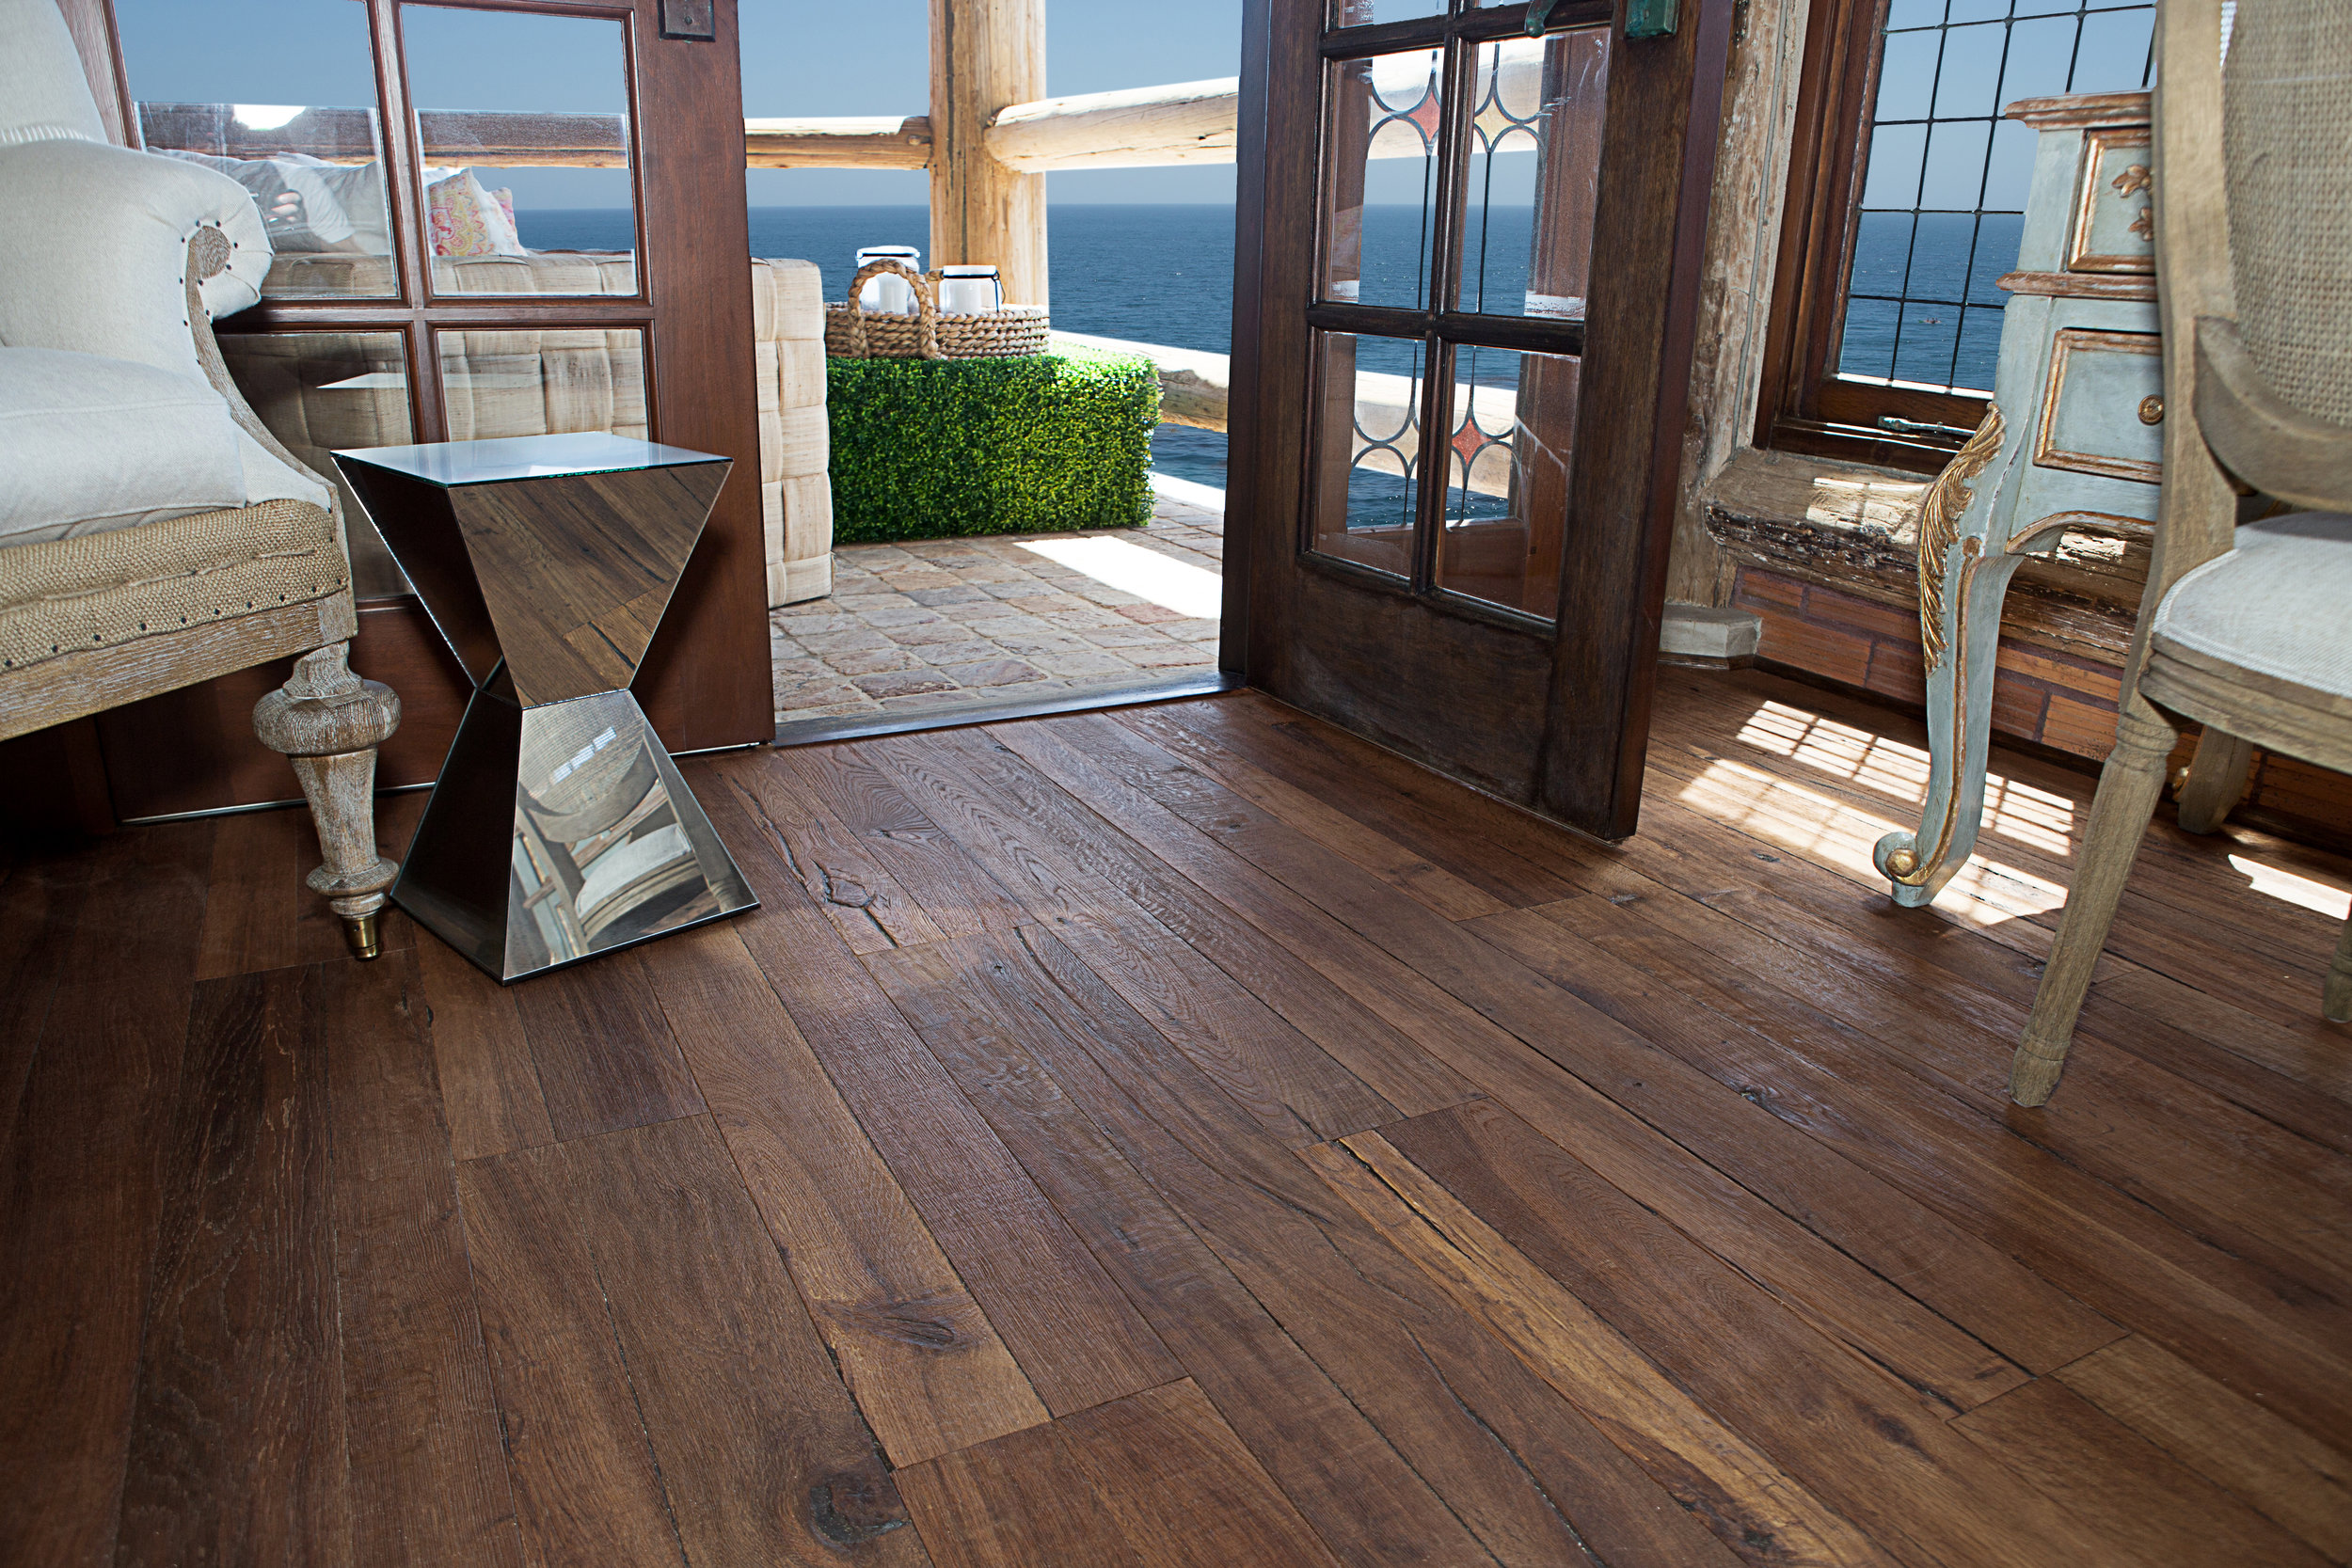 ALL FLOORING      |      RECLAIMED WOOD FLOORING      |      SOLID WOOD FLOORING      |      SOLID WOOD PRE-FINISHED